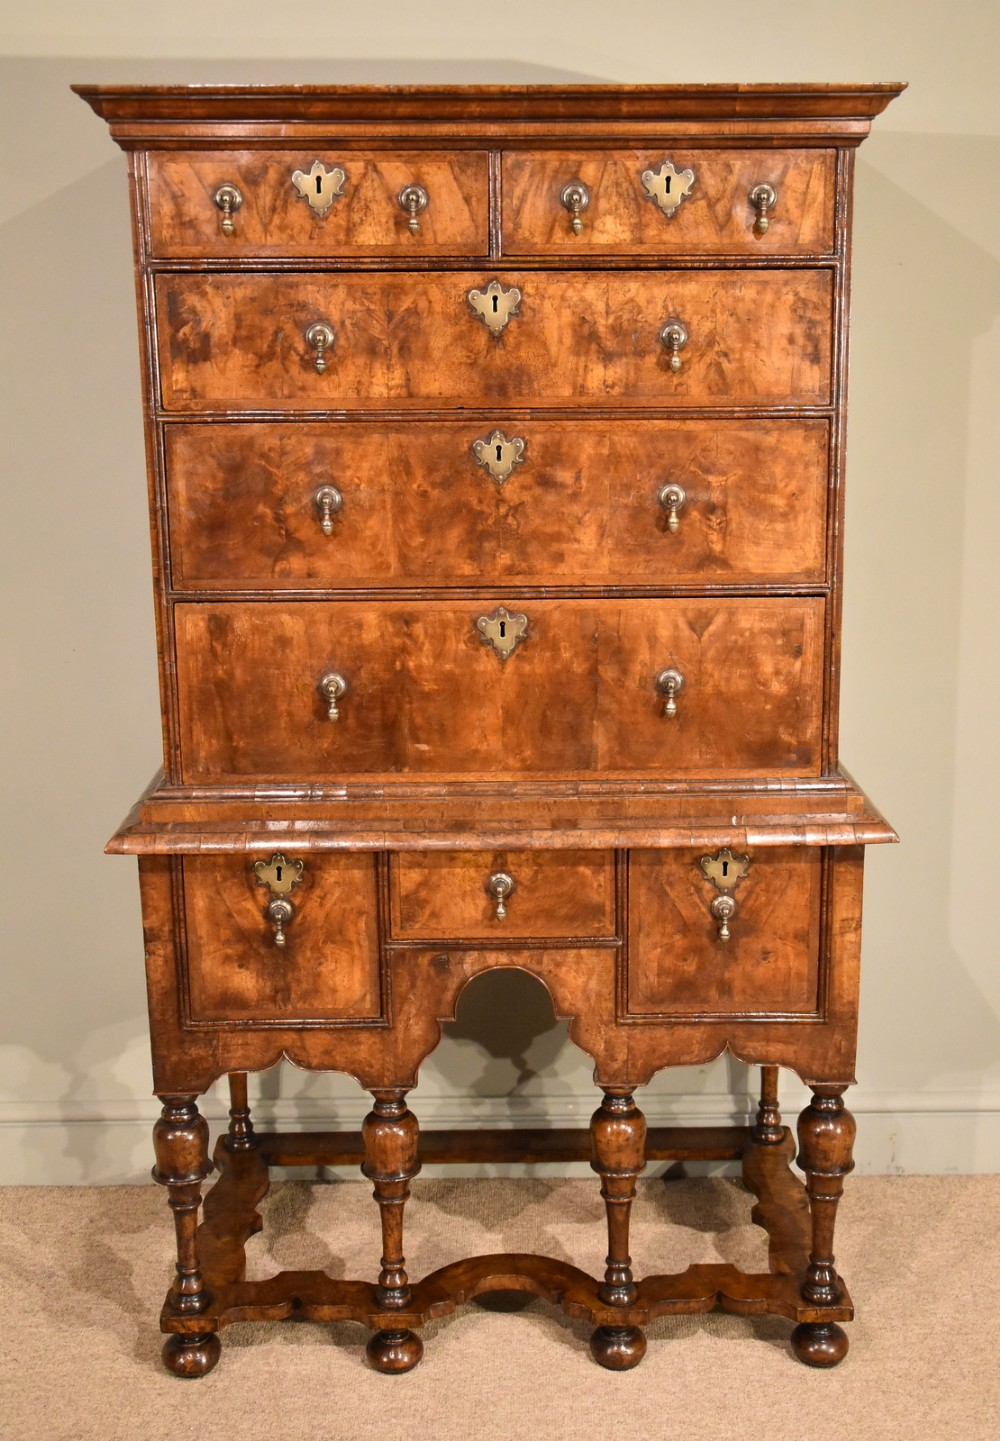 early 18th century chest on stand with provenance